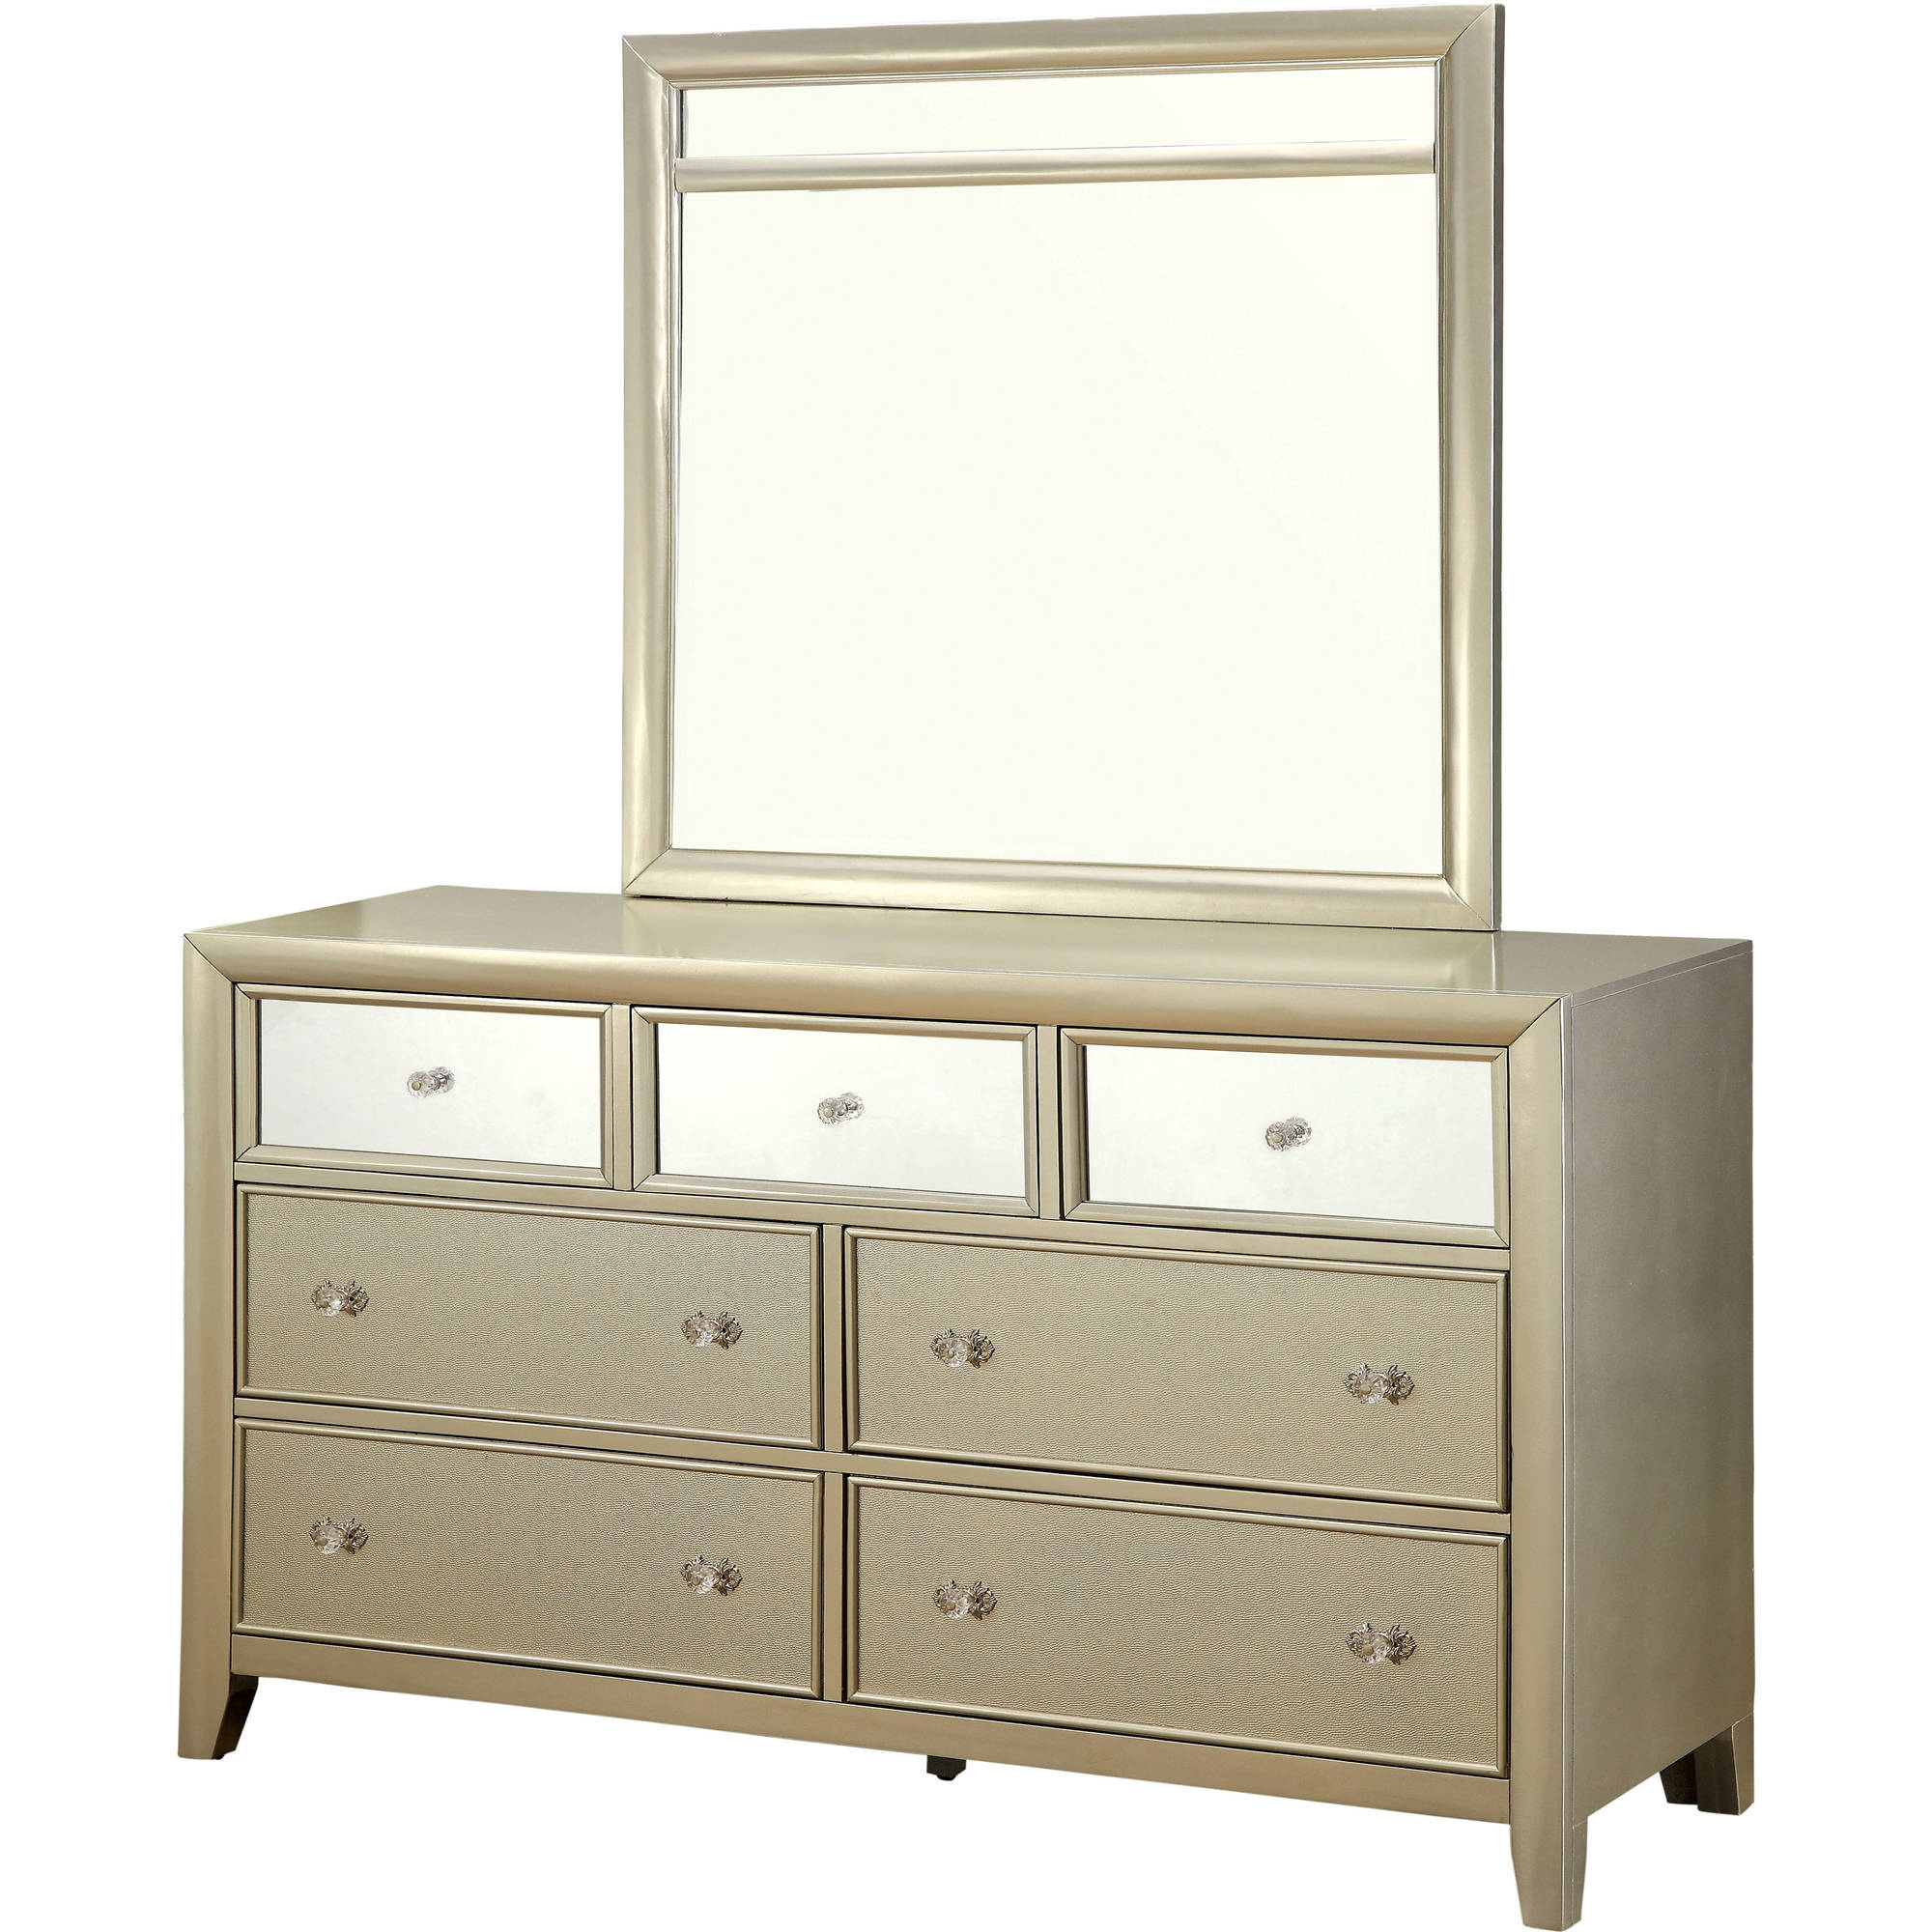 Furniture of America Mallorie Contemporary Dresser and Mirror Set, Silver